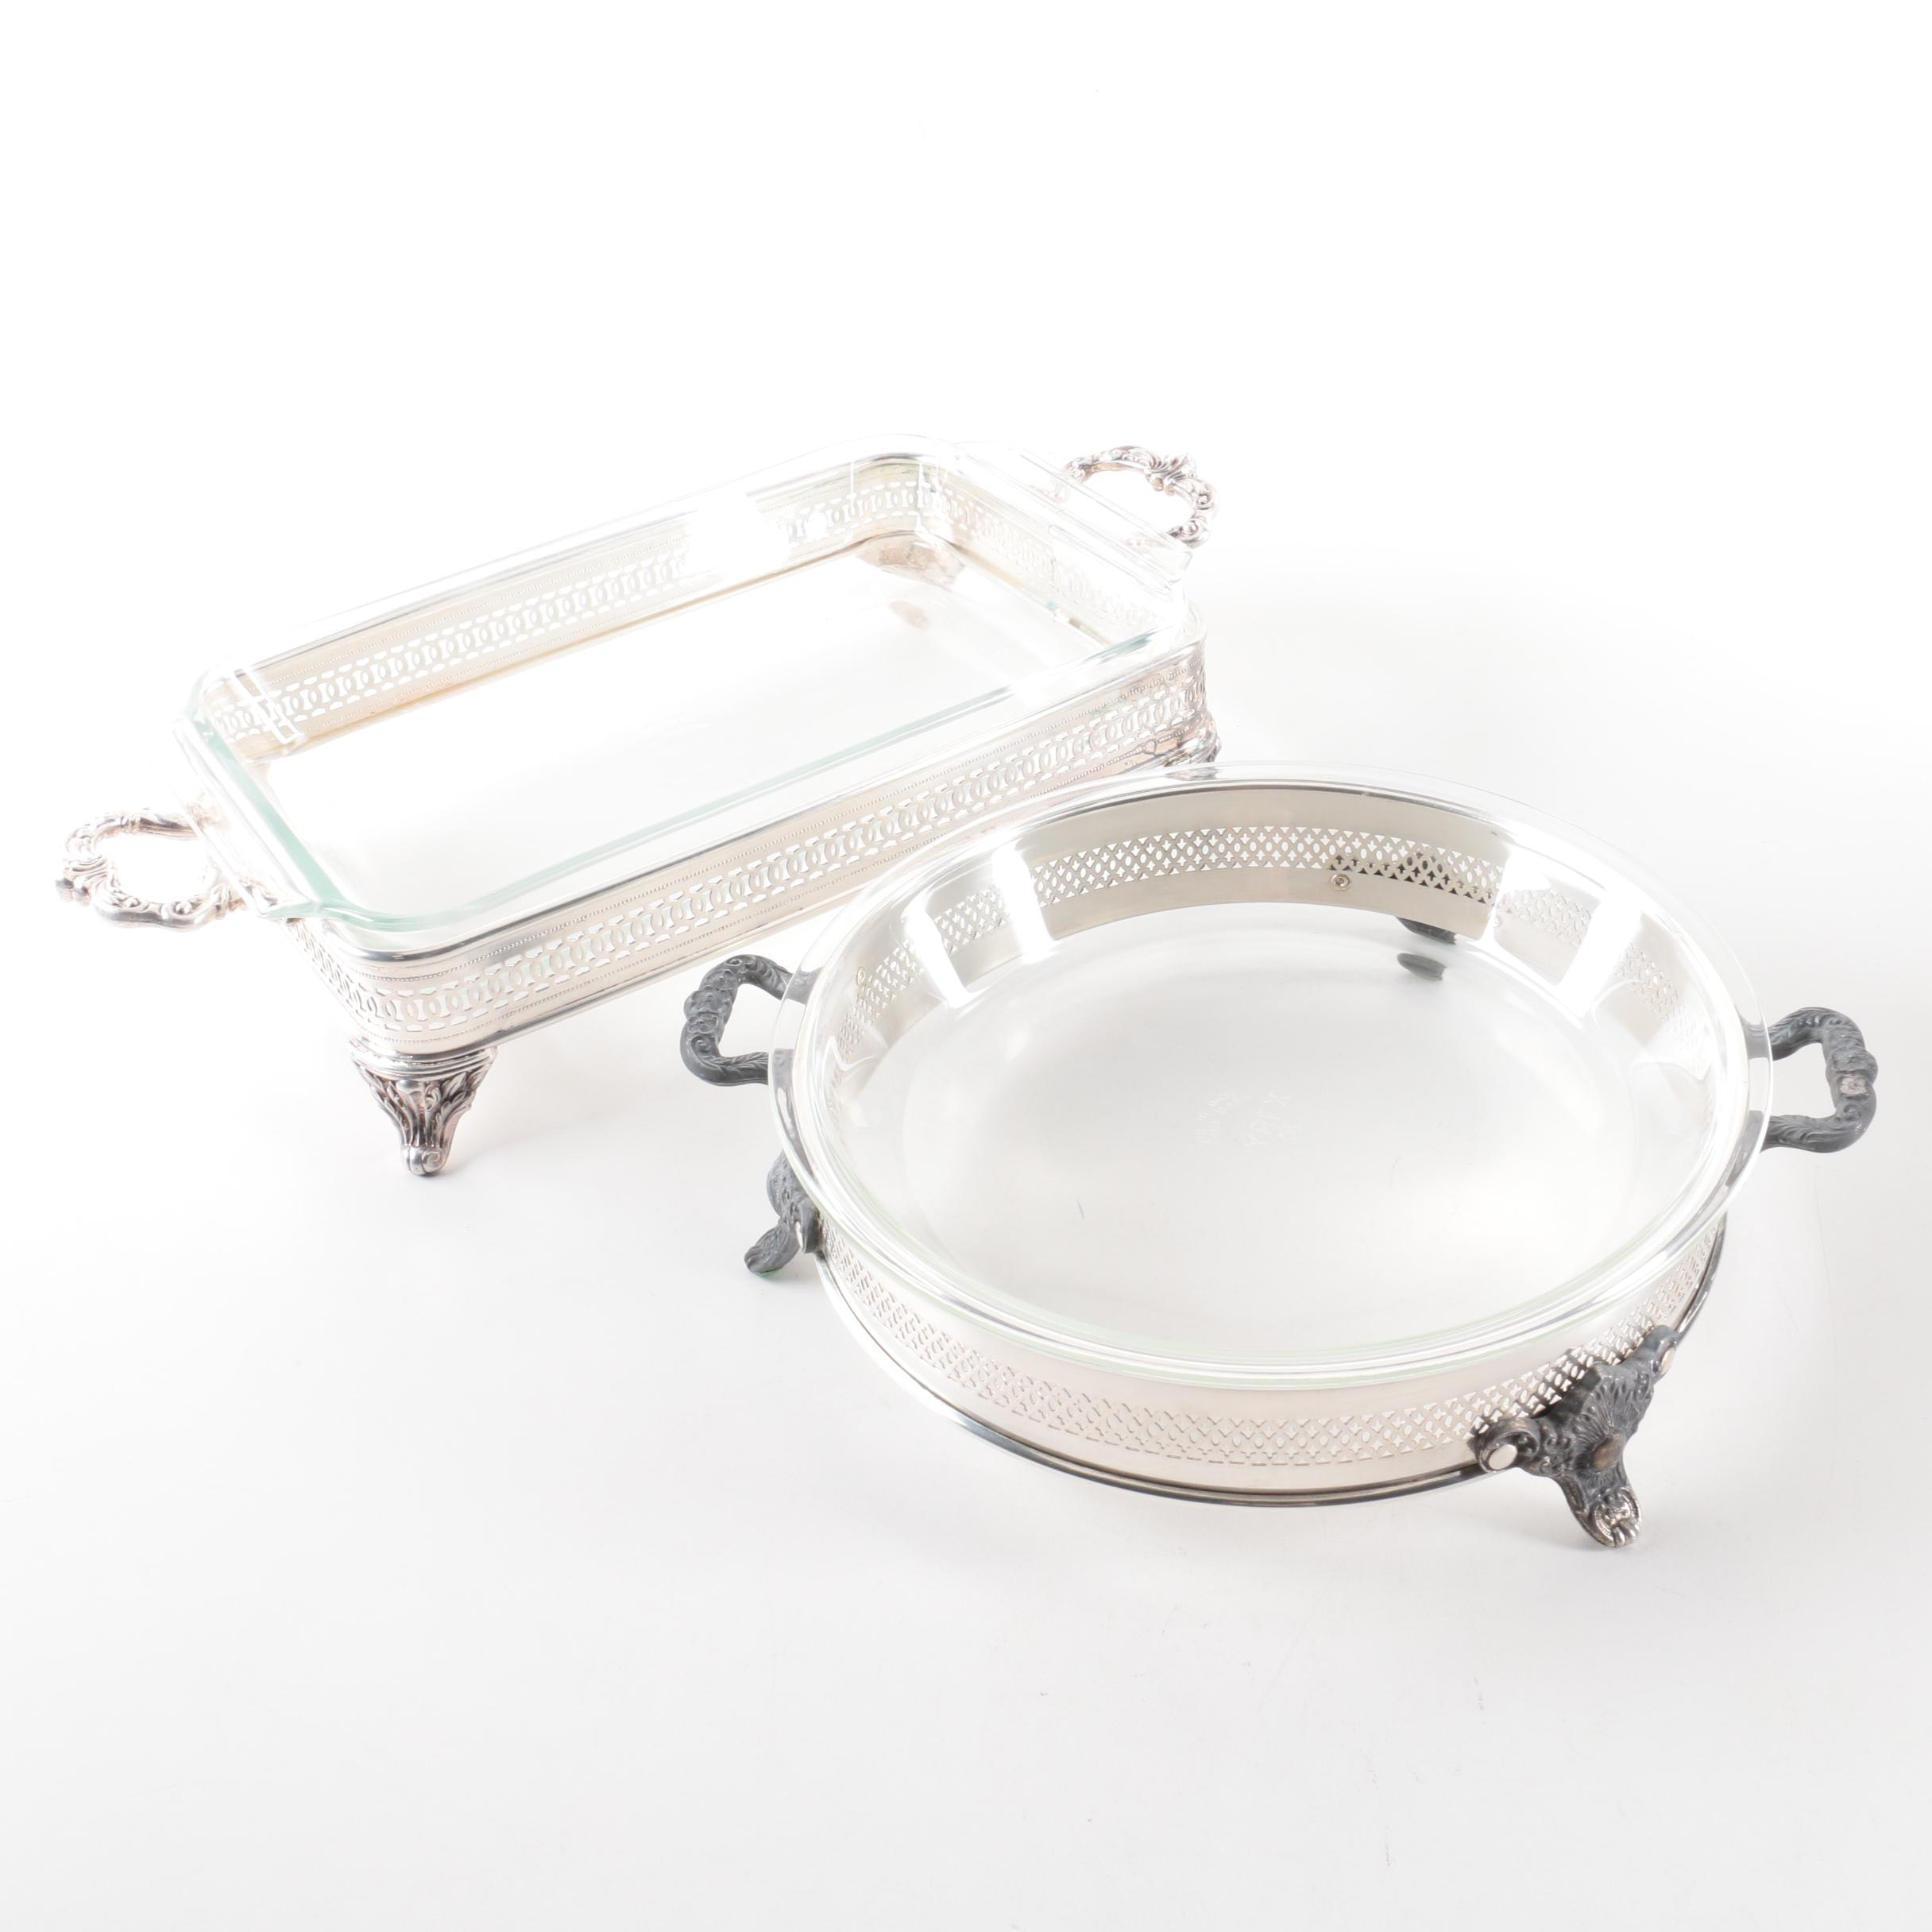 Silver Plate Chafing Dishes with Glass Inserts